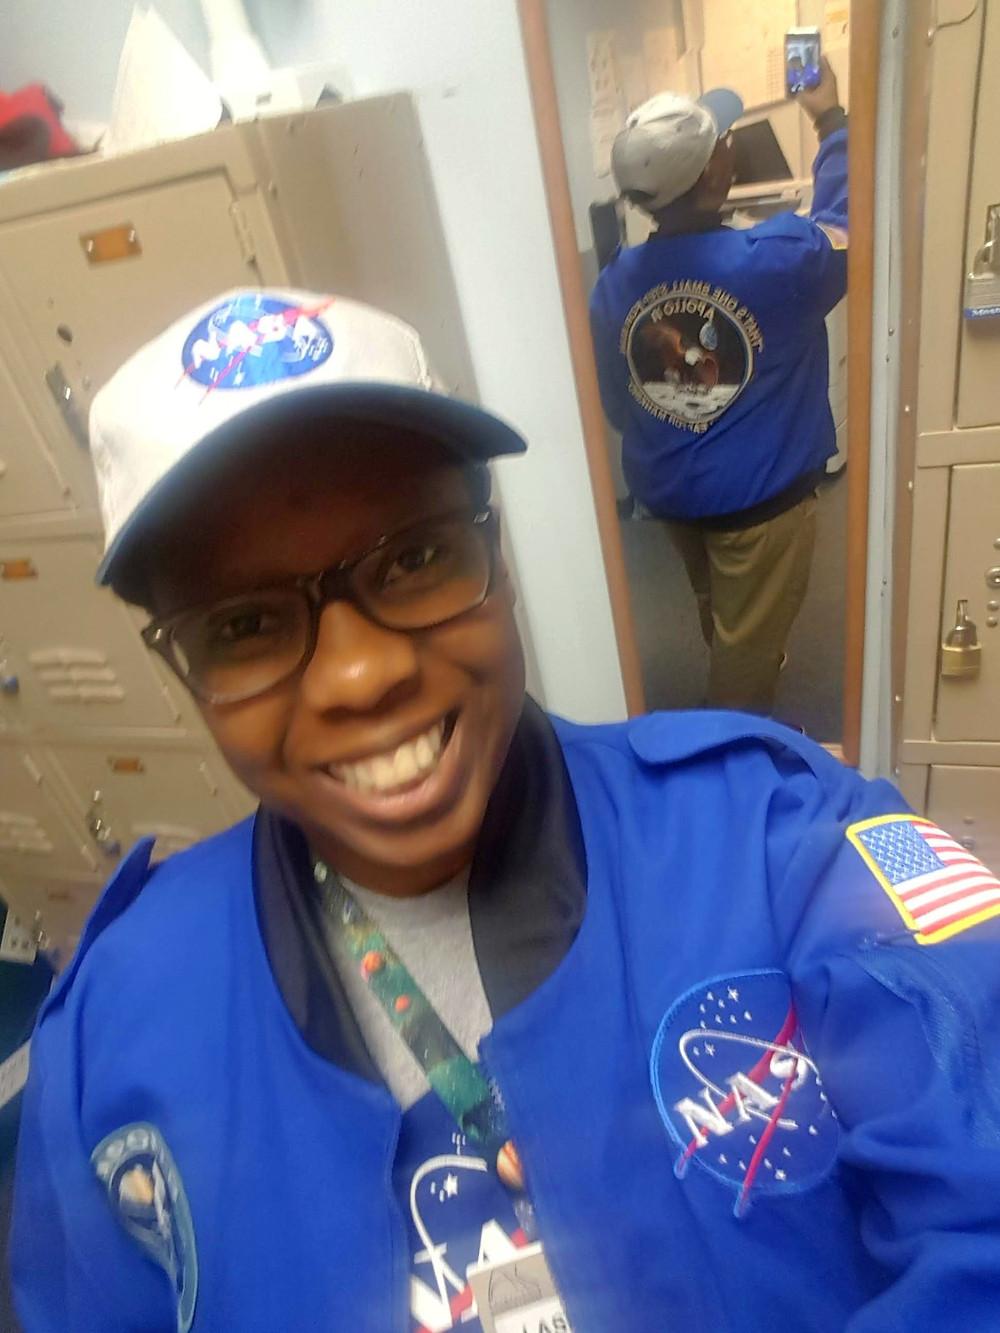 LaShana Lewis pictured wearing NASA flight jacket and baseball cap and t-shirt.  Jacket back is pictured in the mirror with the Apollo 11 mission patch.